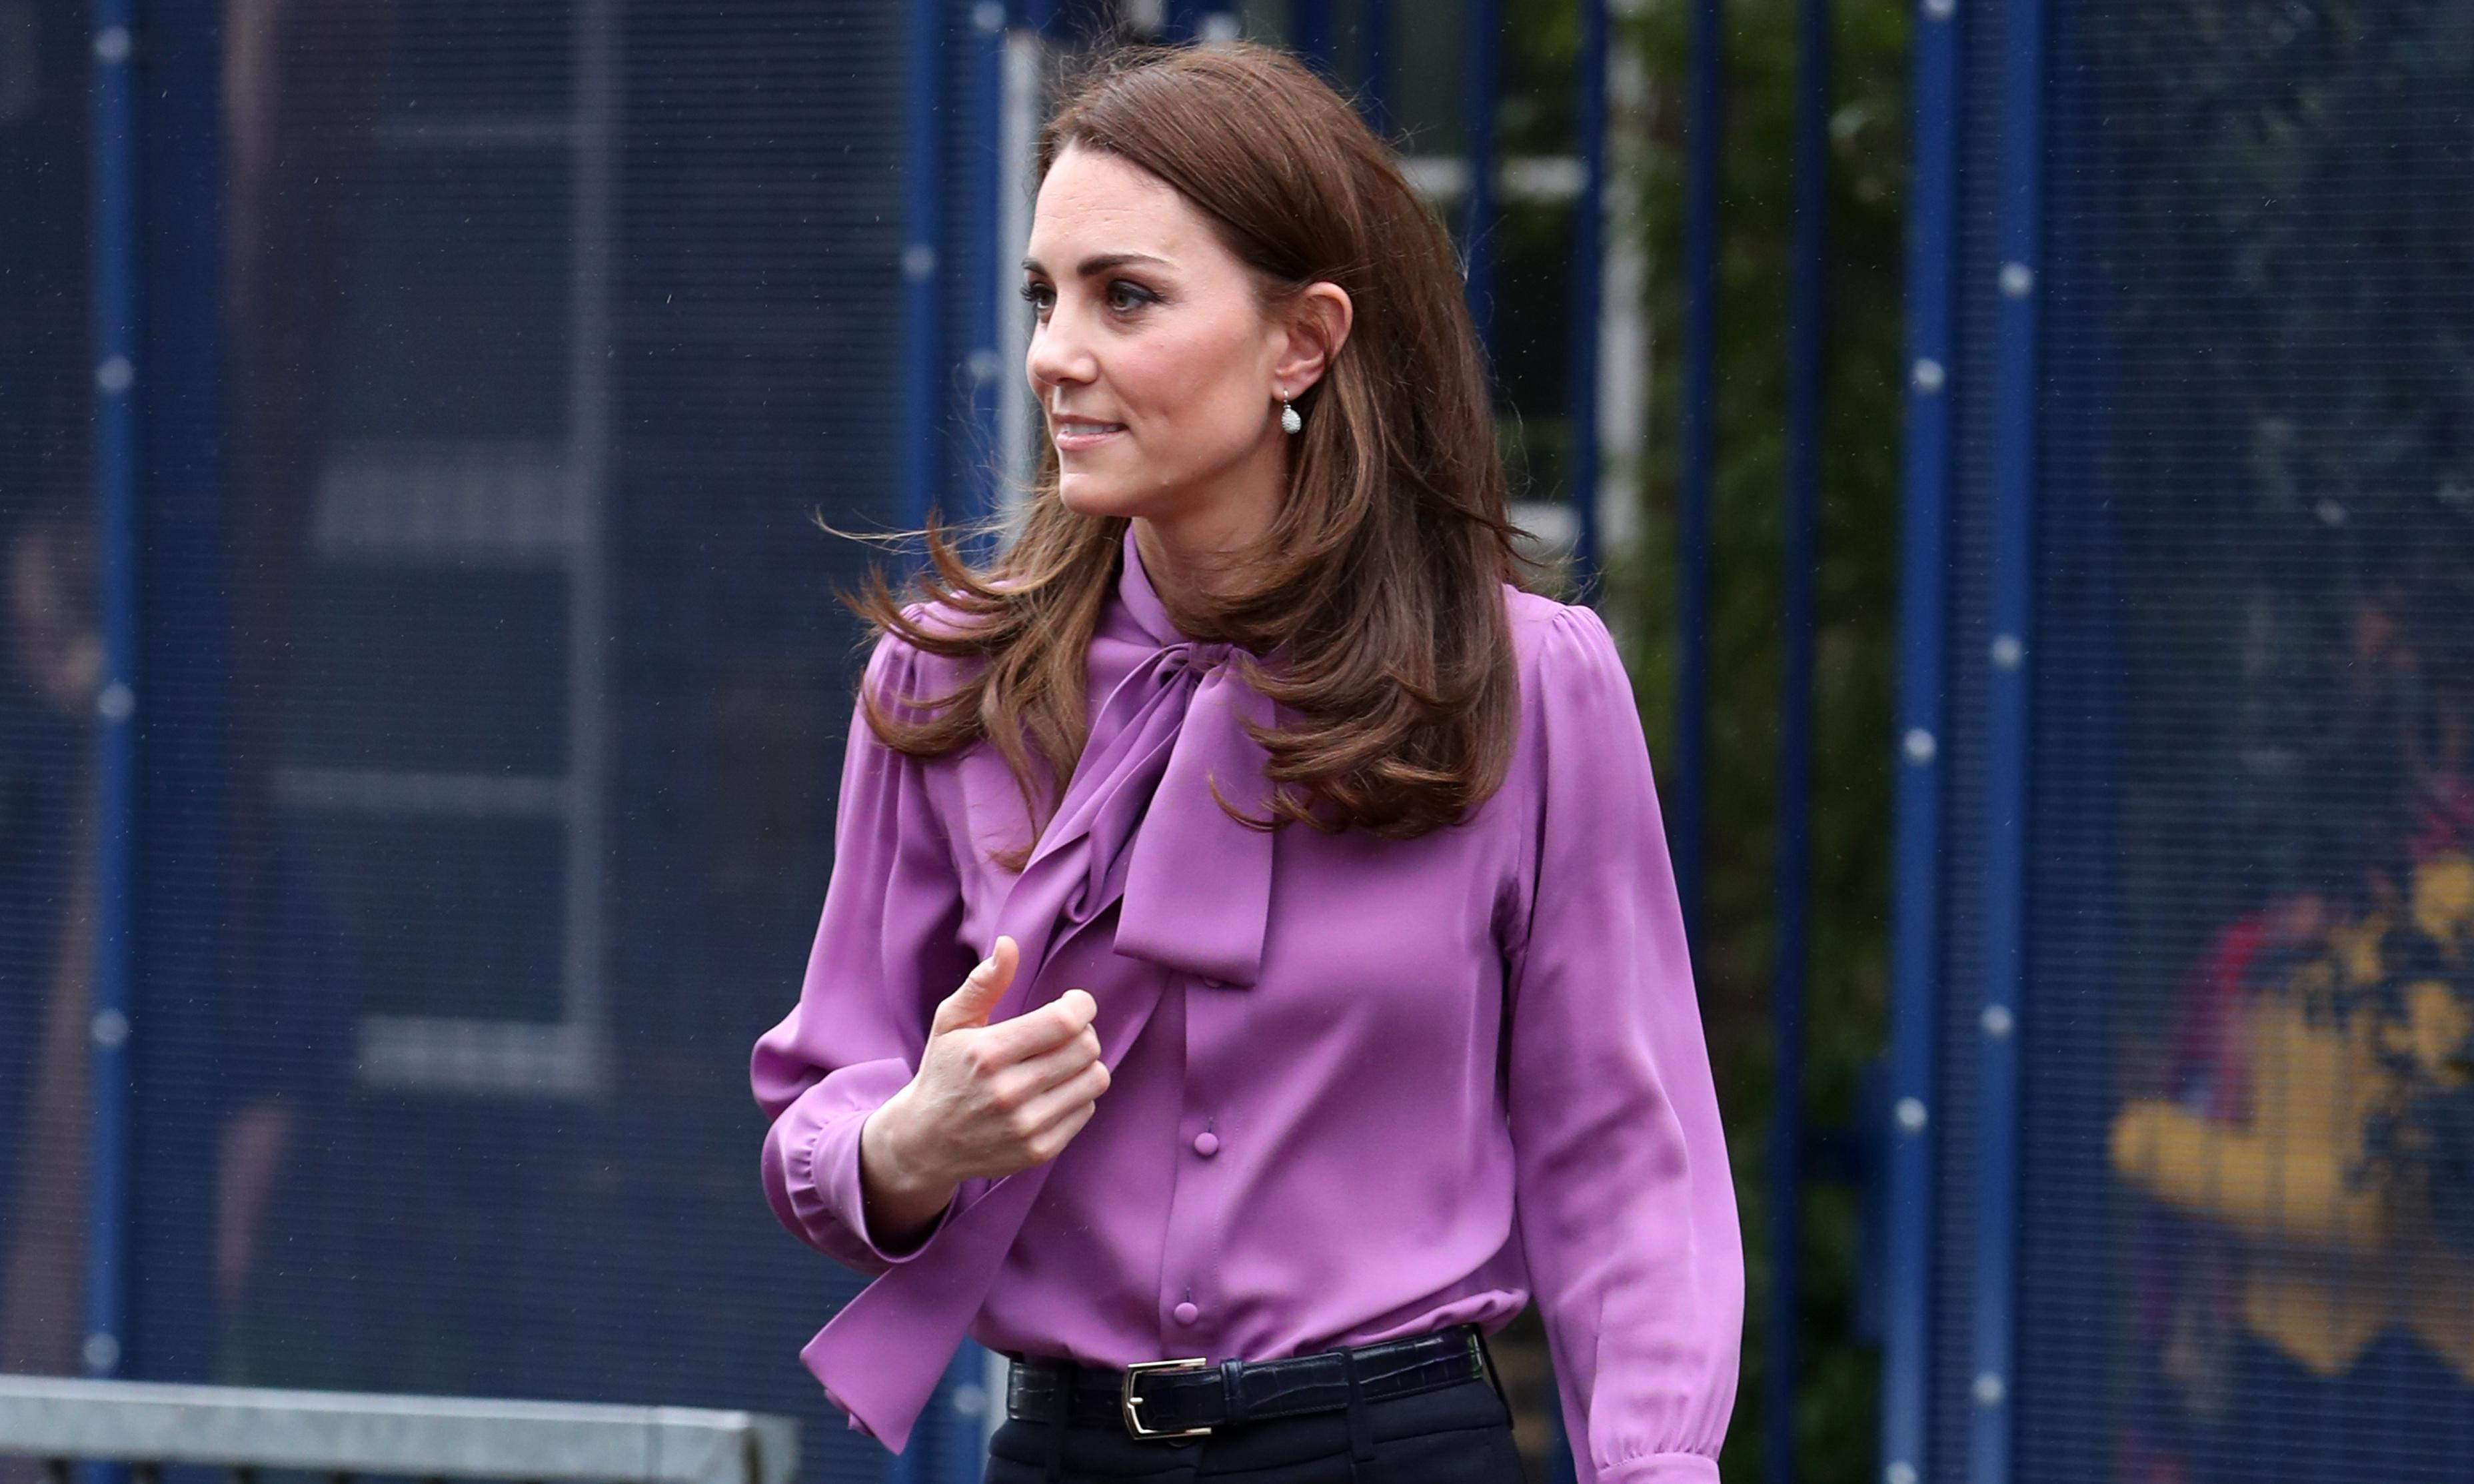 Back-to-front dressing: the Duchess of Cambridge knows what she's doing